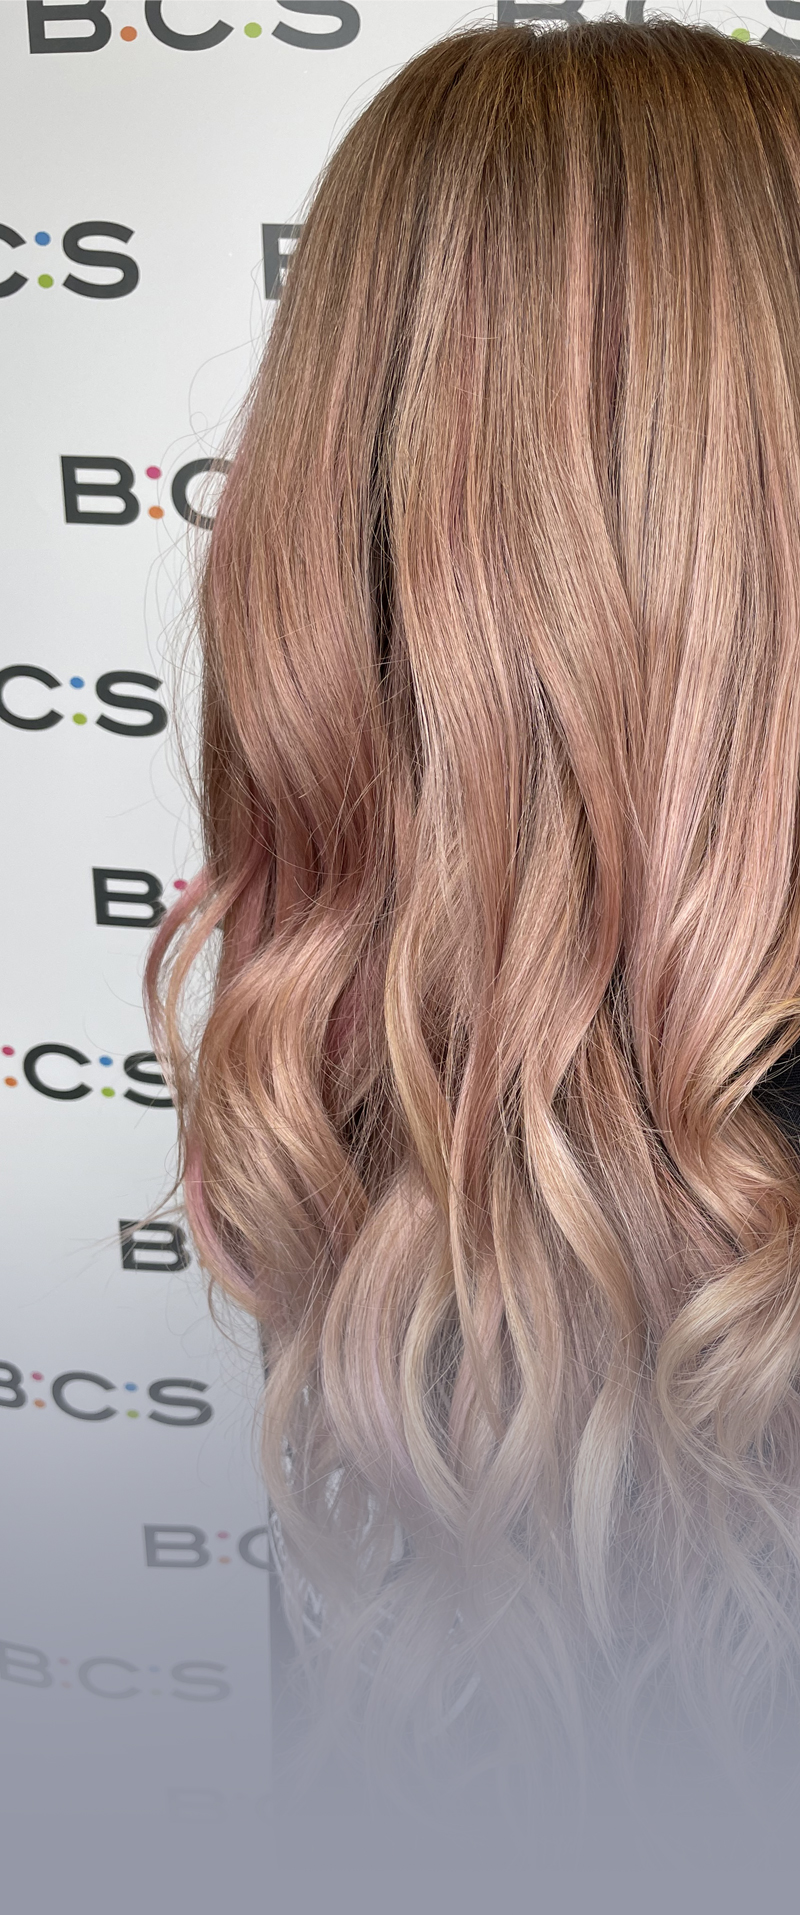 curled hair with BCS banner behind. profile shot of hair